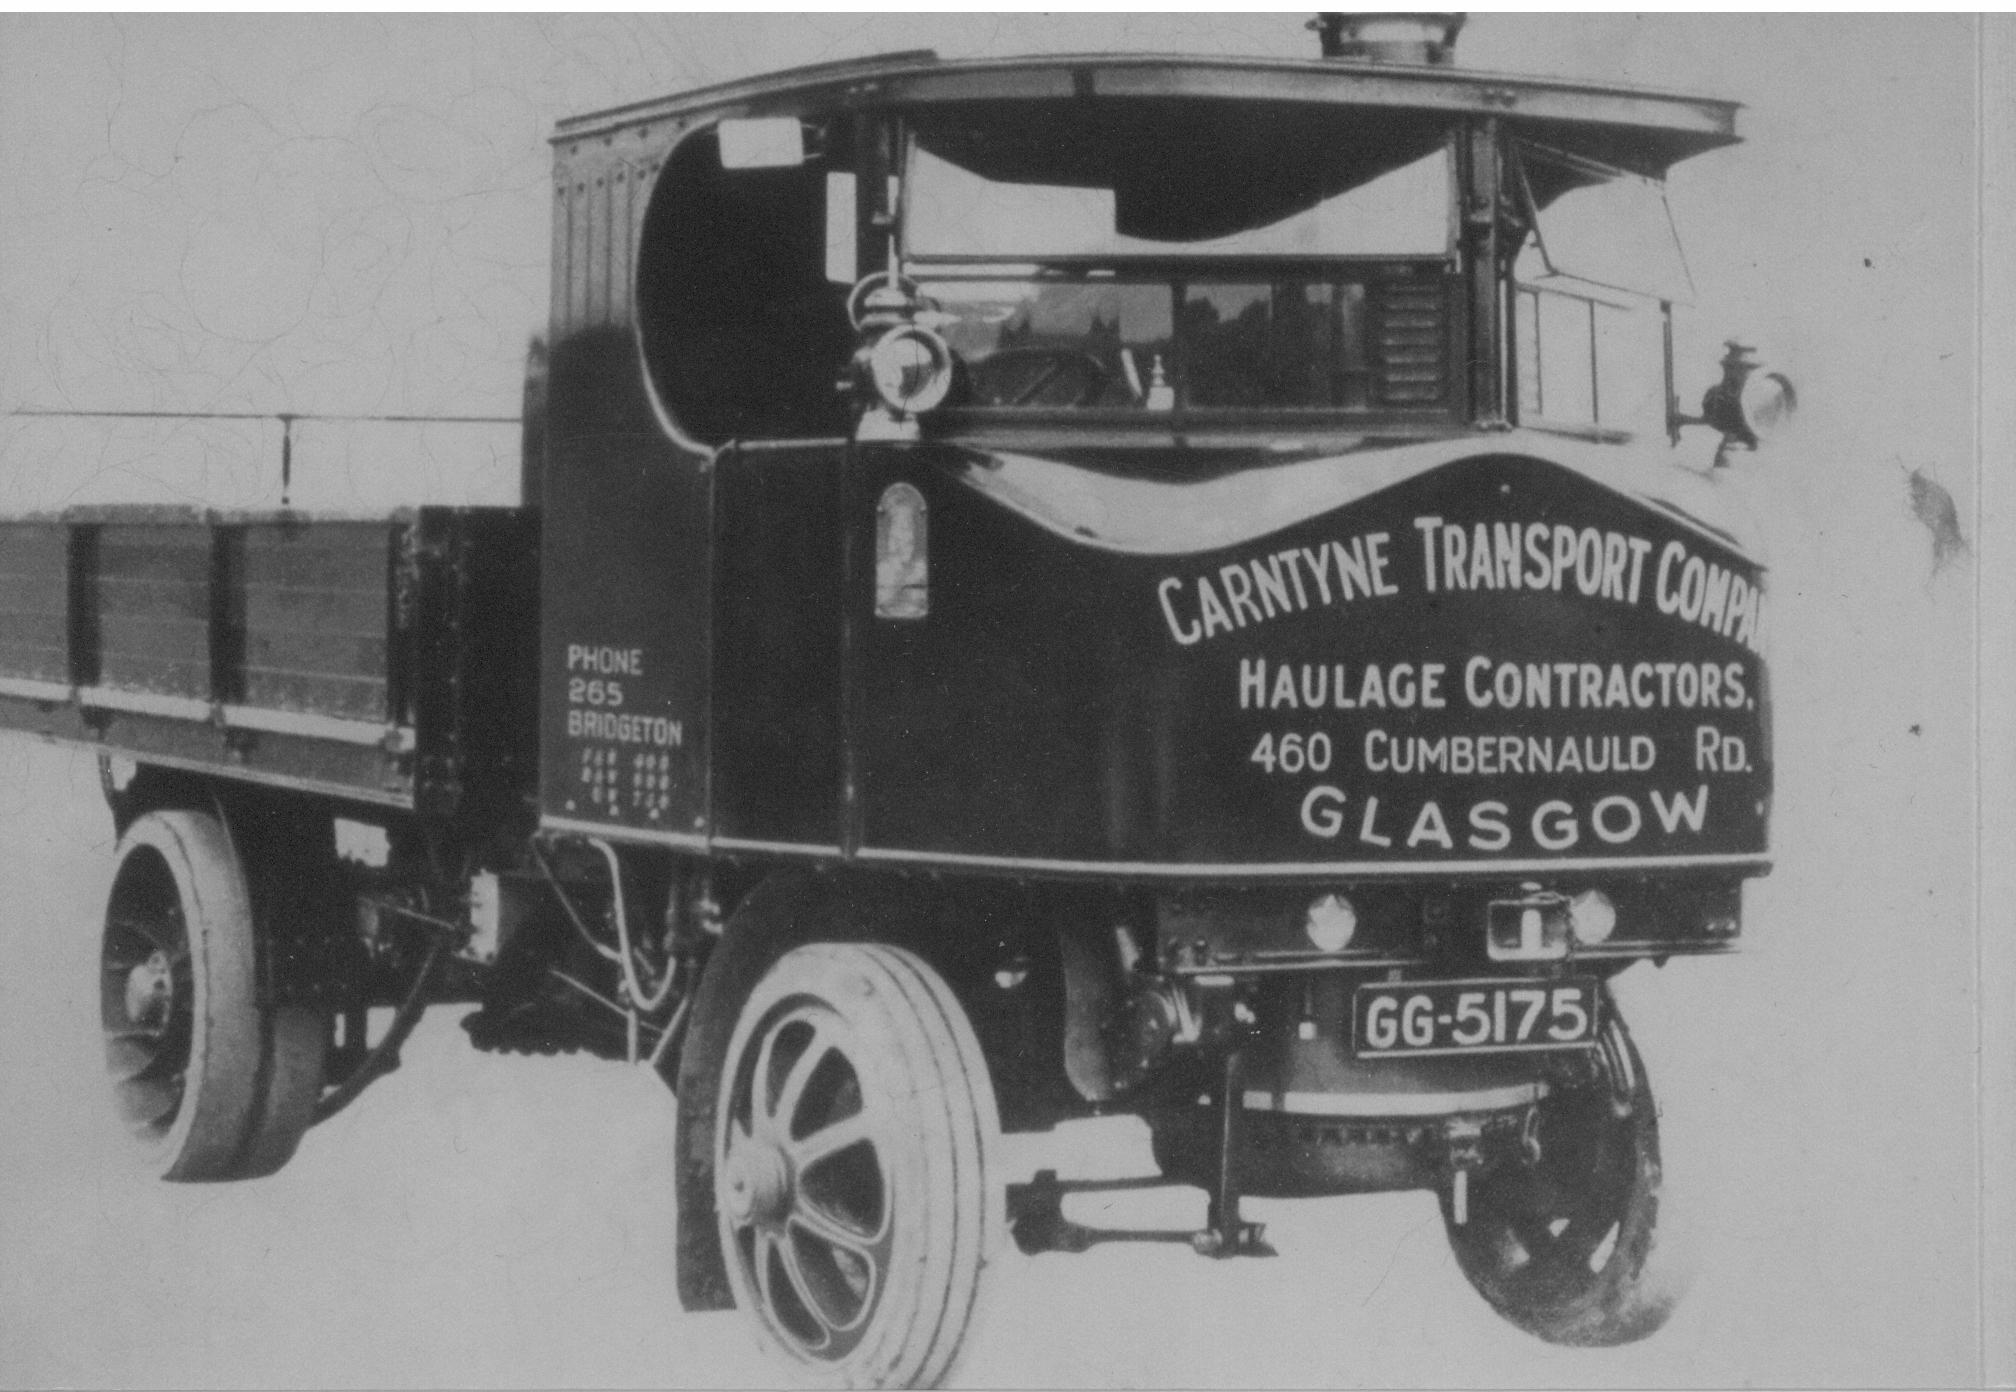 Carntyne Transport Celebrates its 60th Anniversary